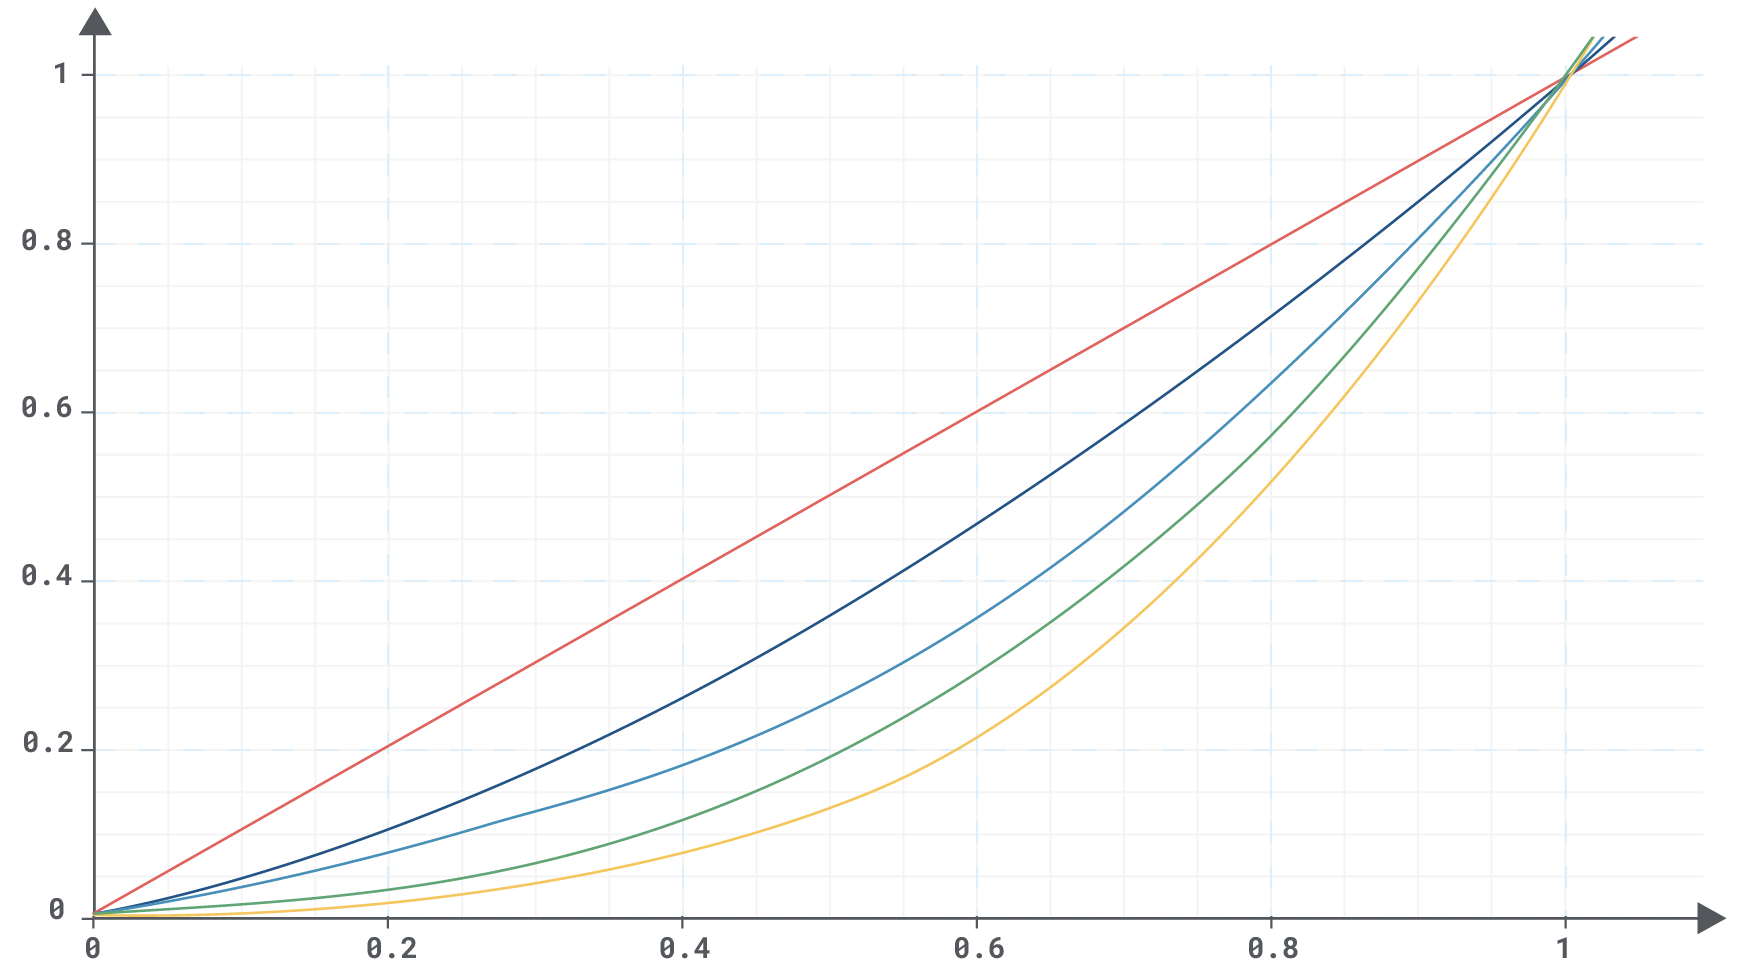 A graph showing the plot curves of different software badness quantification formulas.